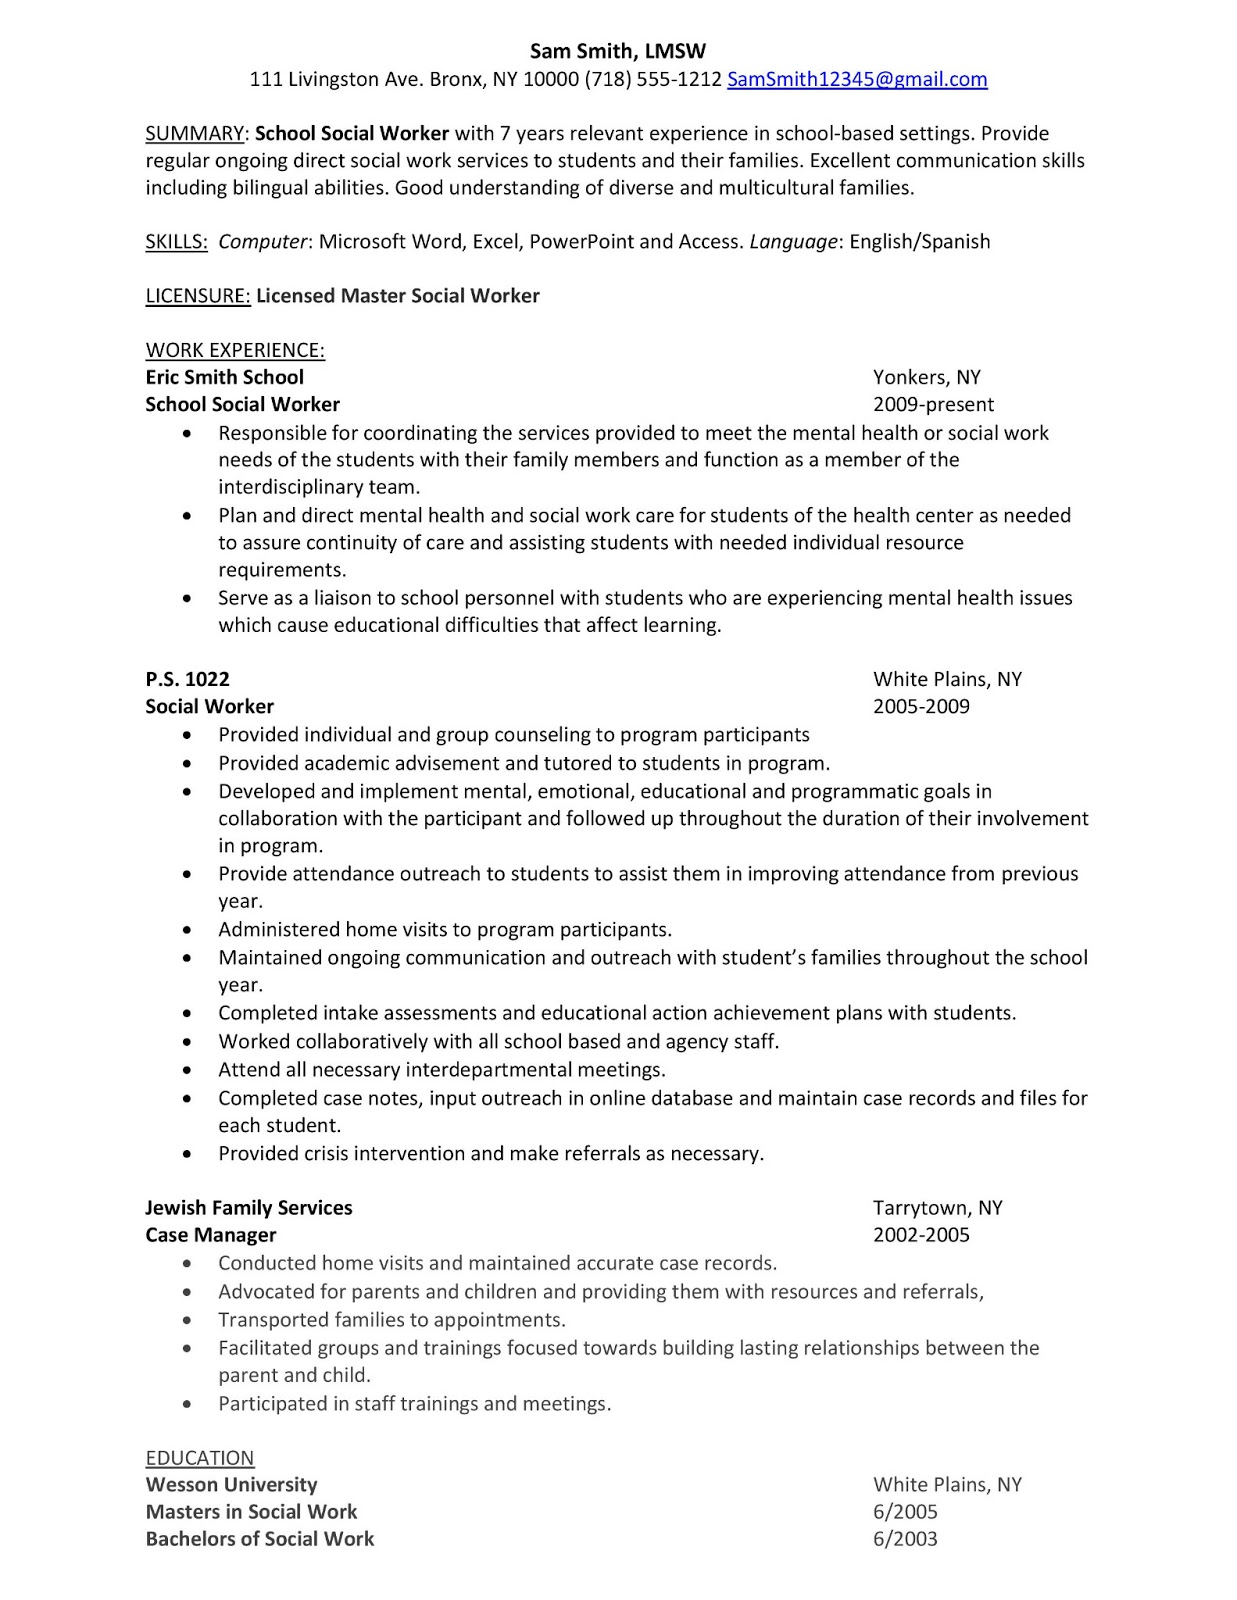 Child And Youth Worker Resume Examples Town Of Mount Pleasant Ny Engineering Department Faqs Resume